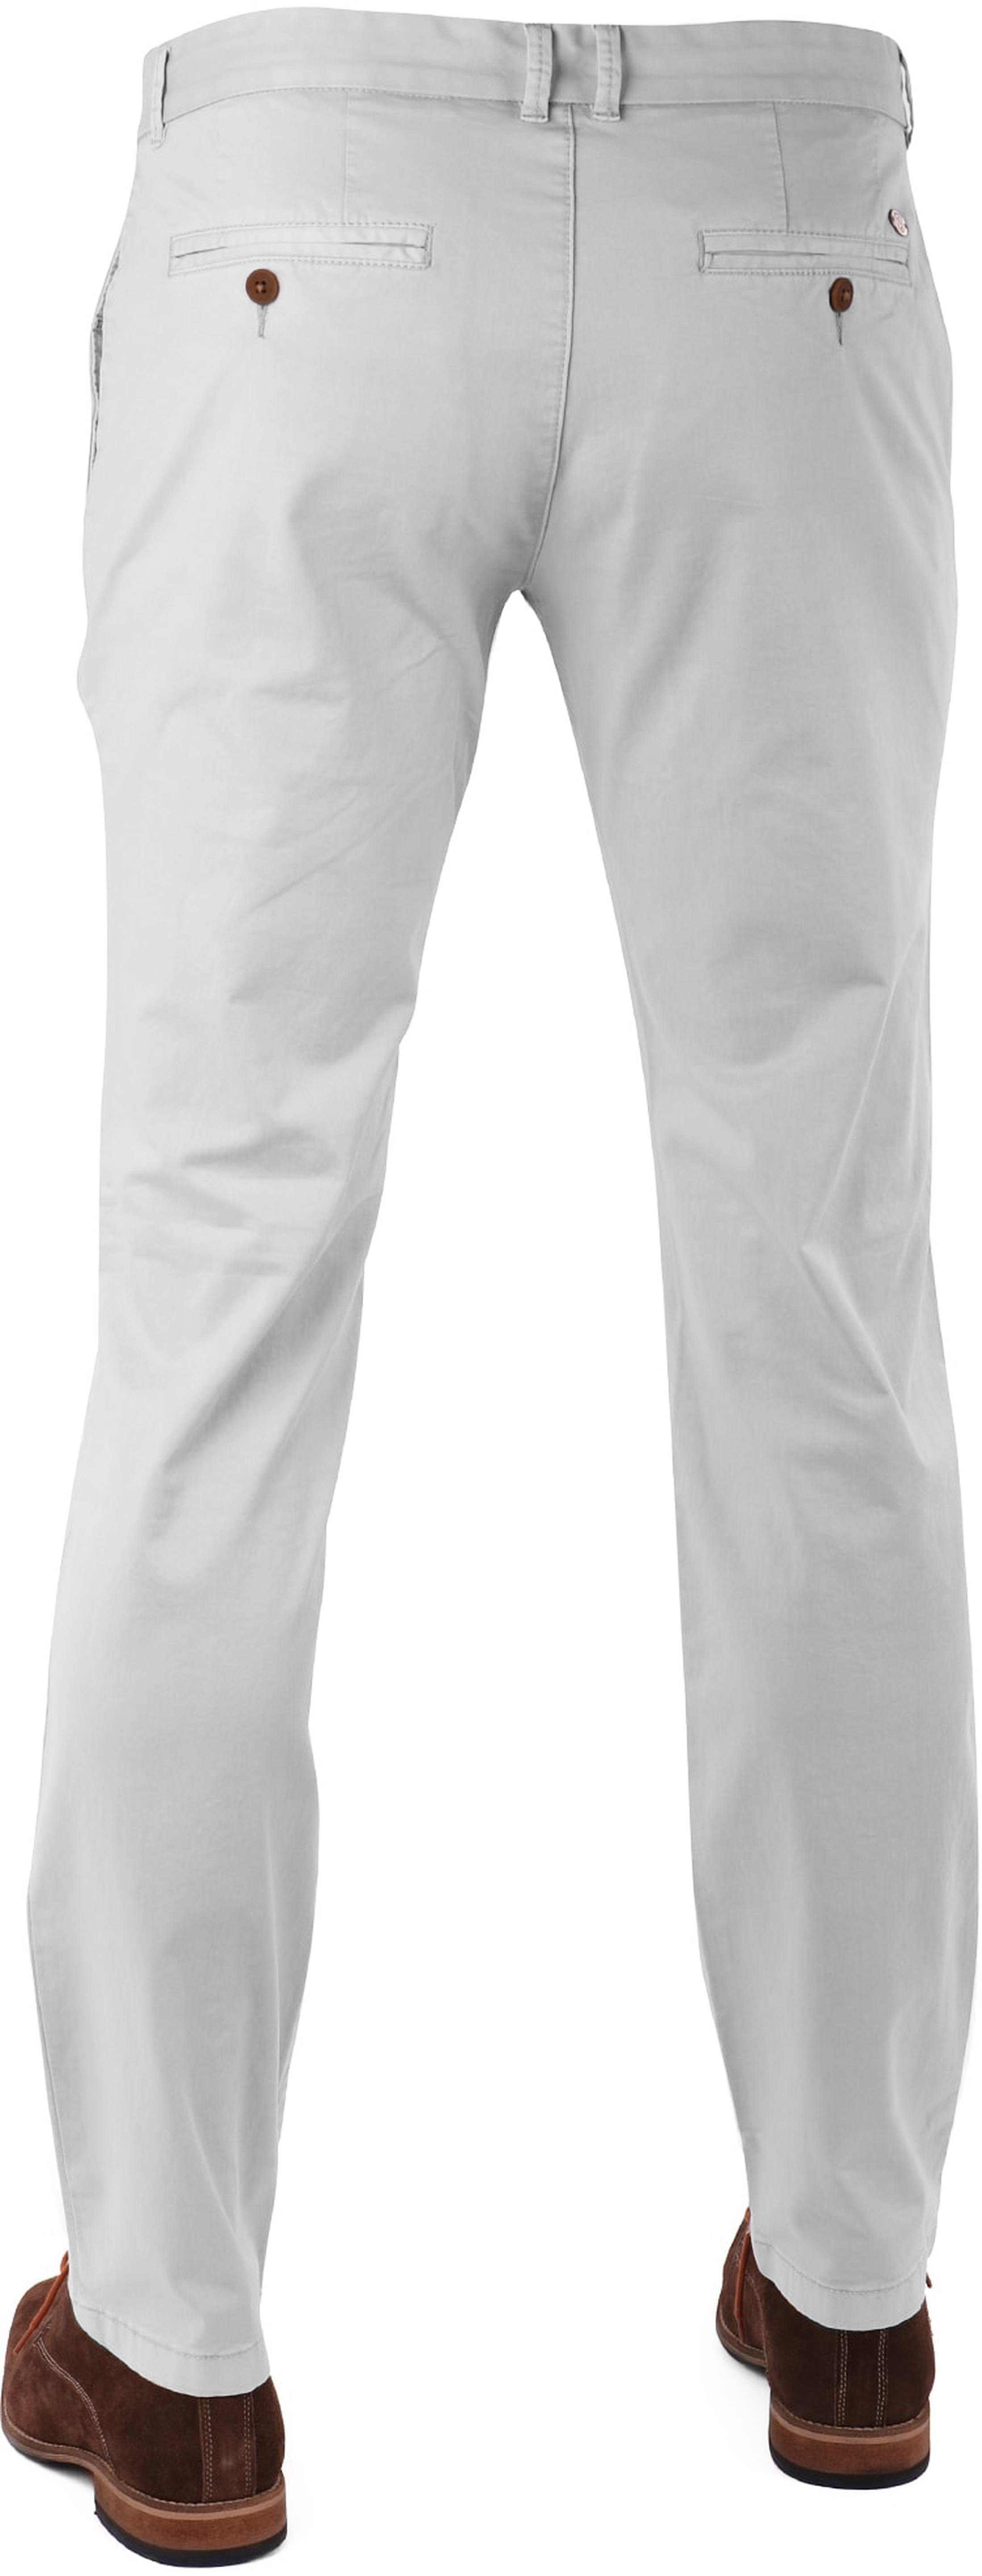 Suitable Chino Hose Light Grey foto 4